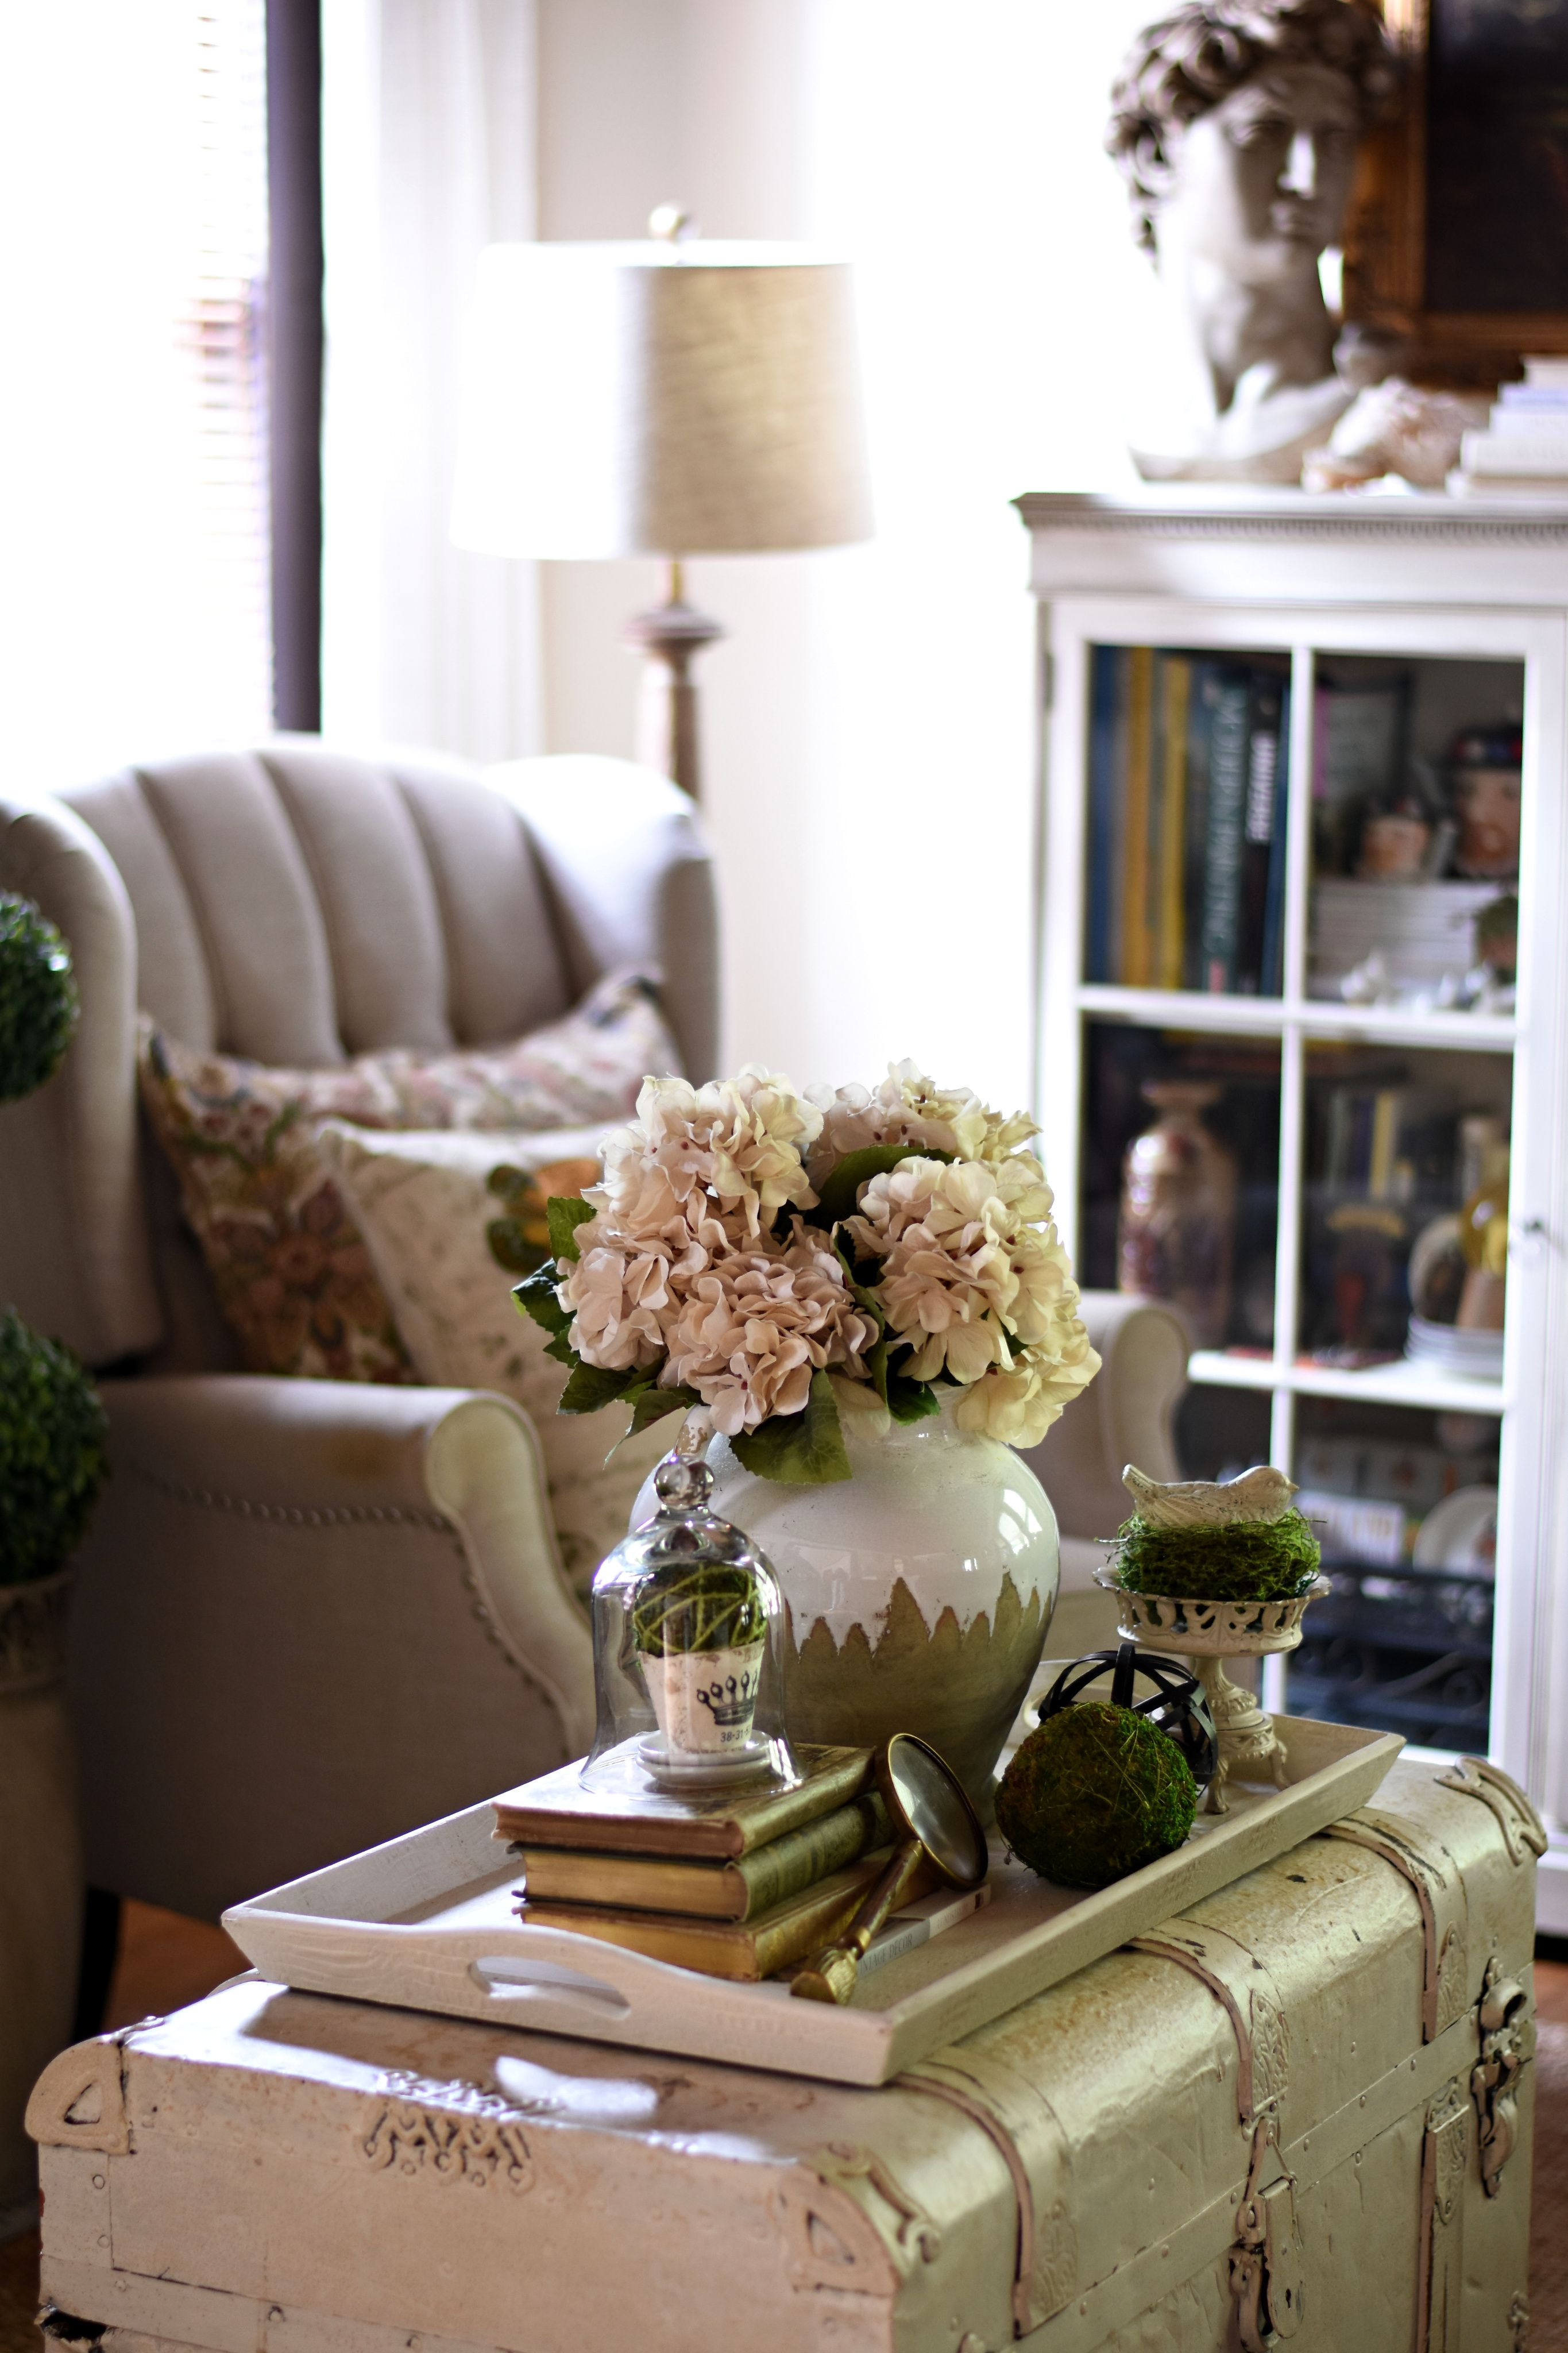 How To Style A Simple Coffee Table Vignette Styled Tray Ideas In 2020 Coffee Table Vignettes Simple Coffee Table Coffee Table